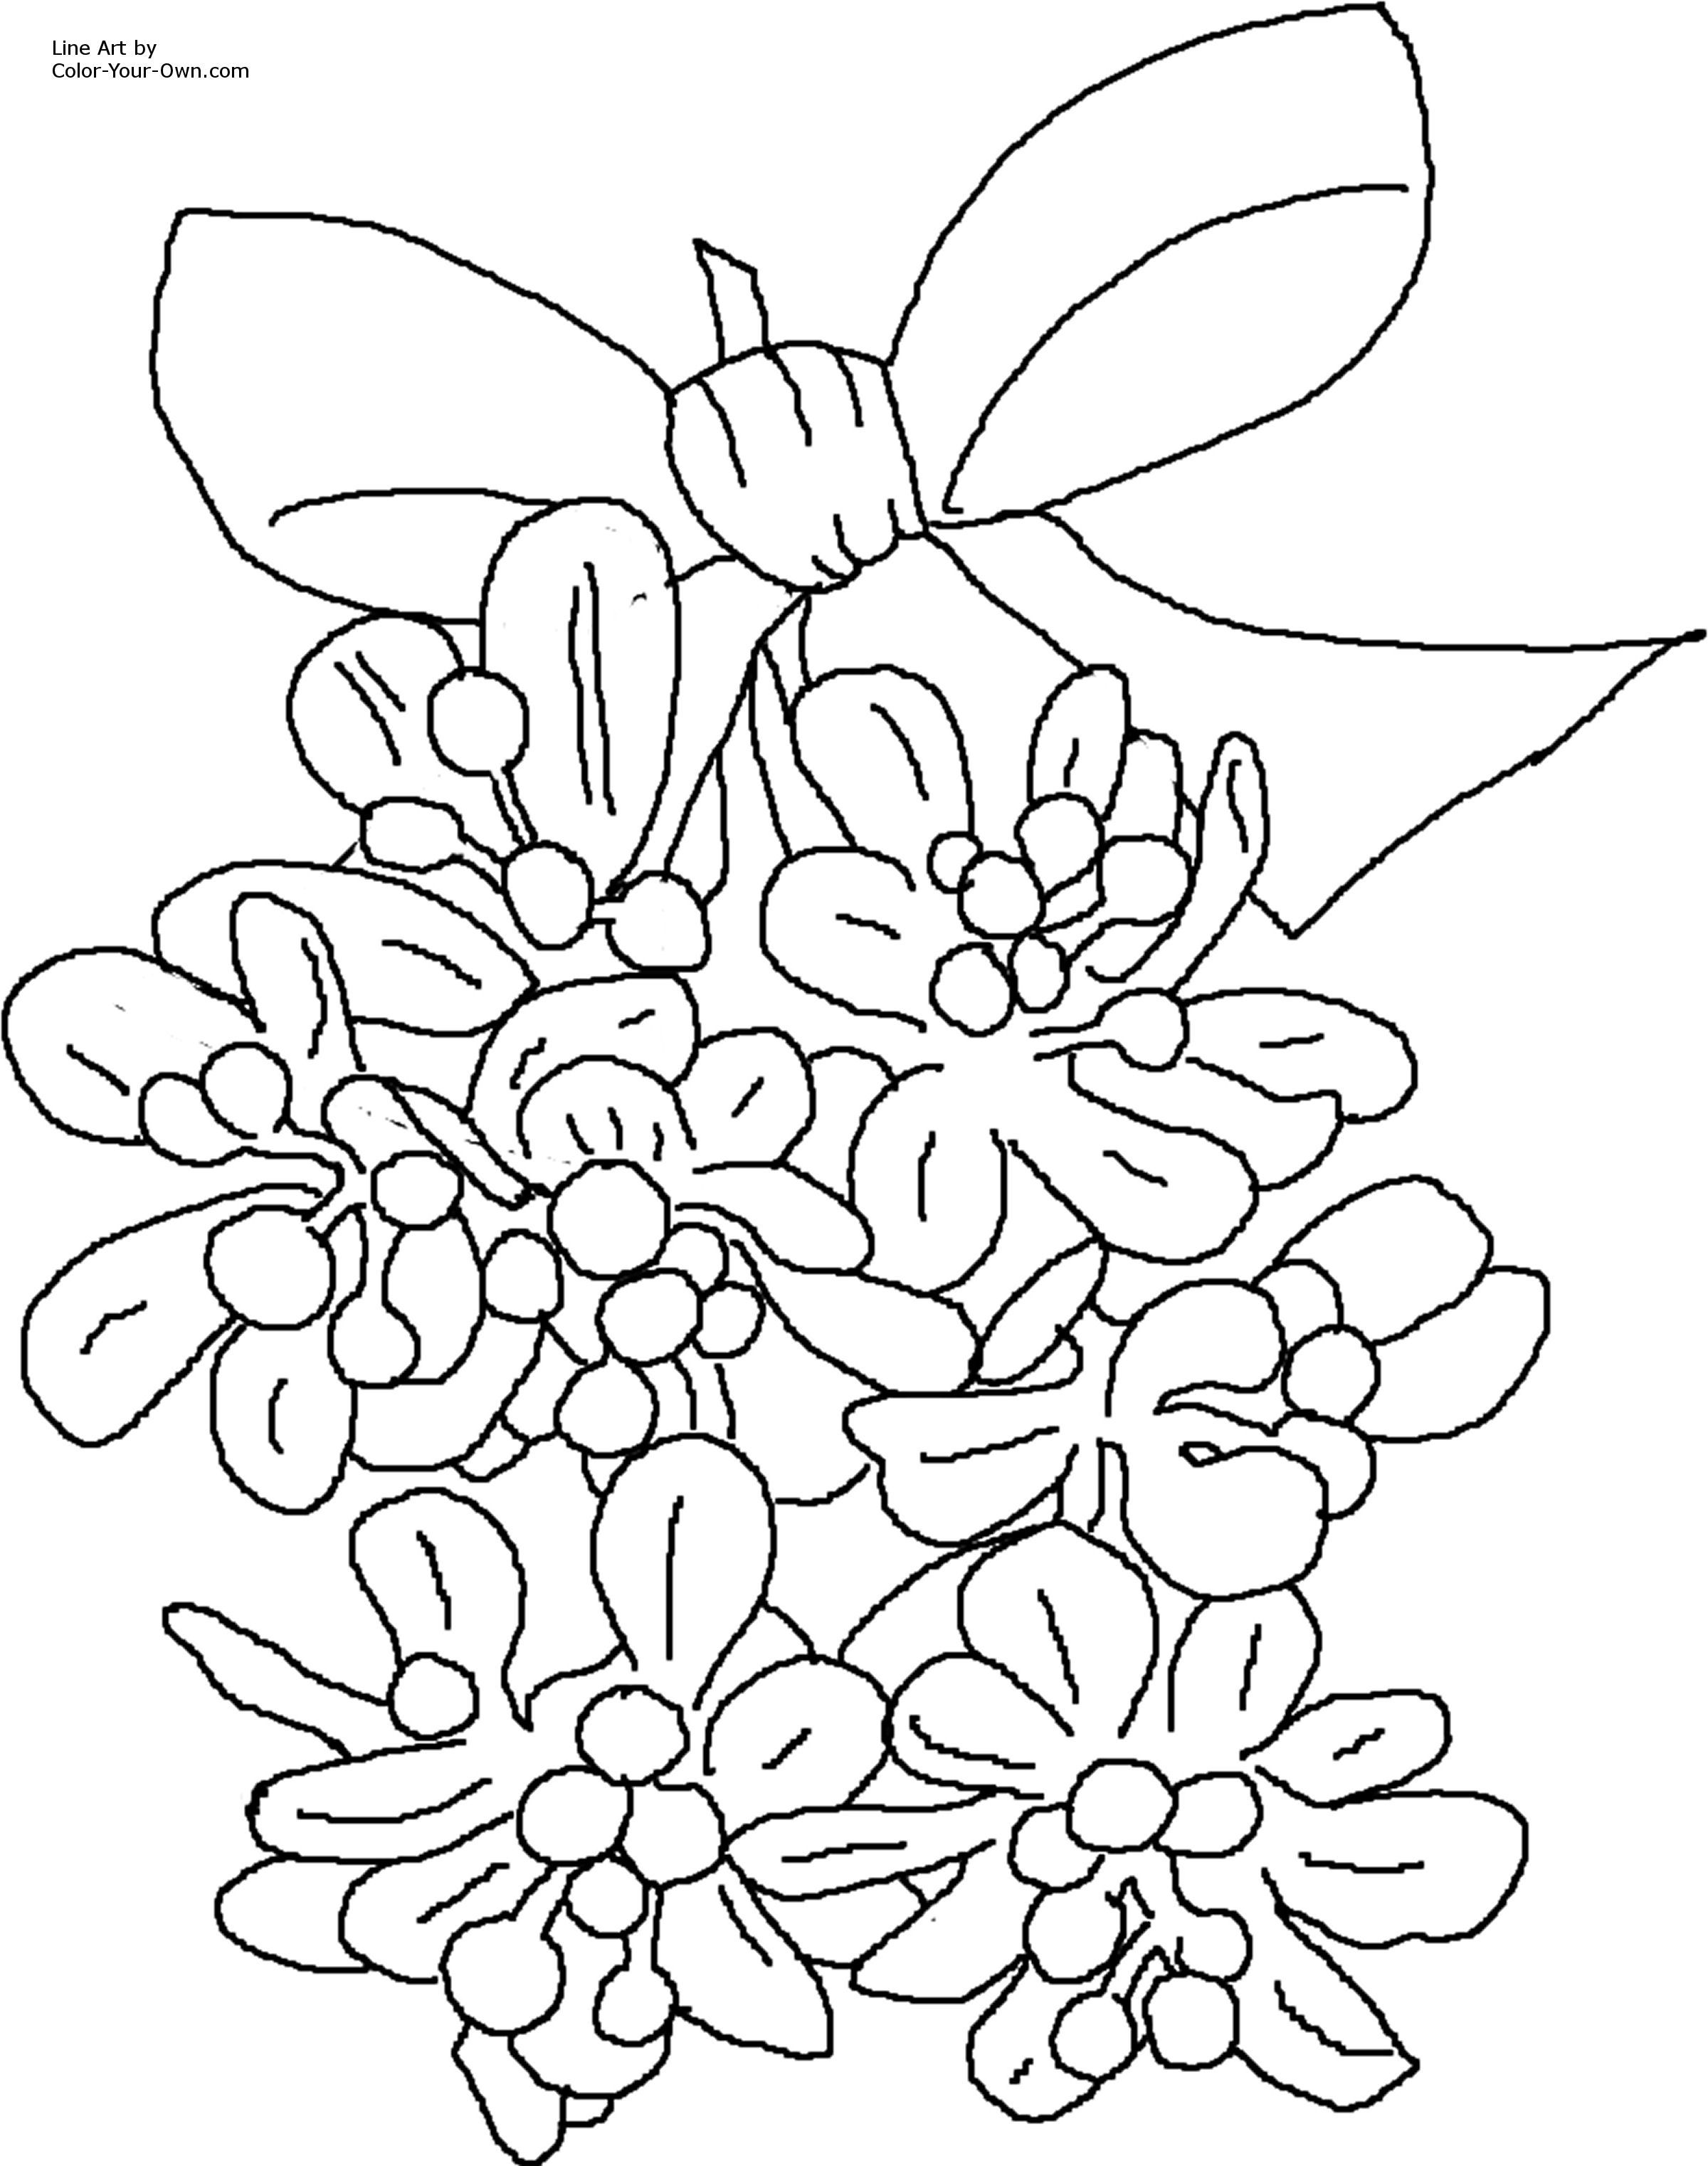 mistletoe coloring pages # 2